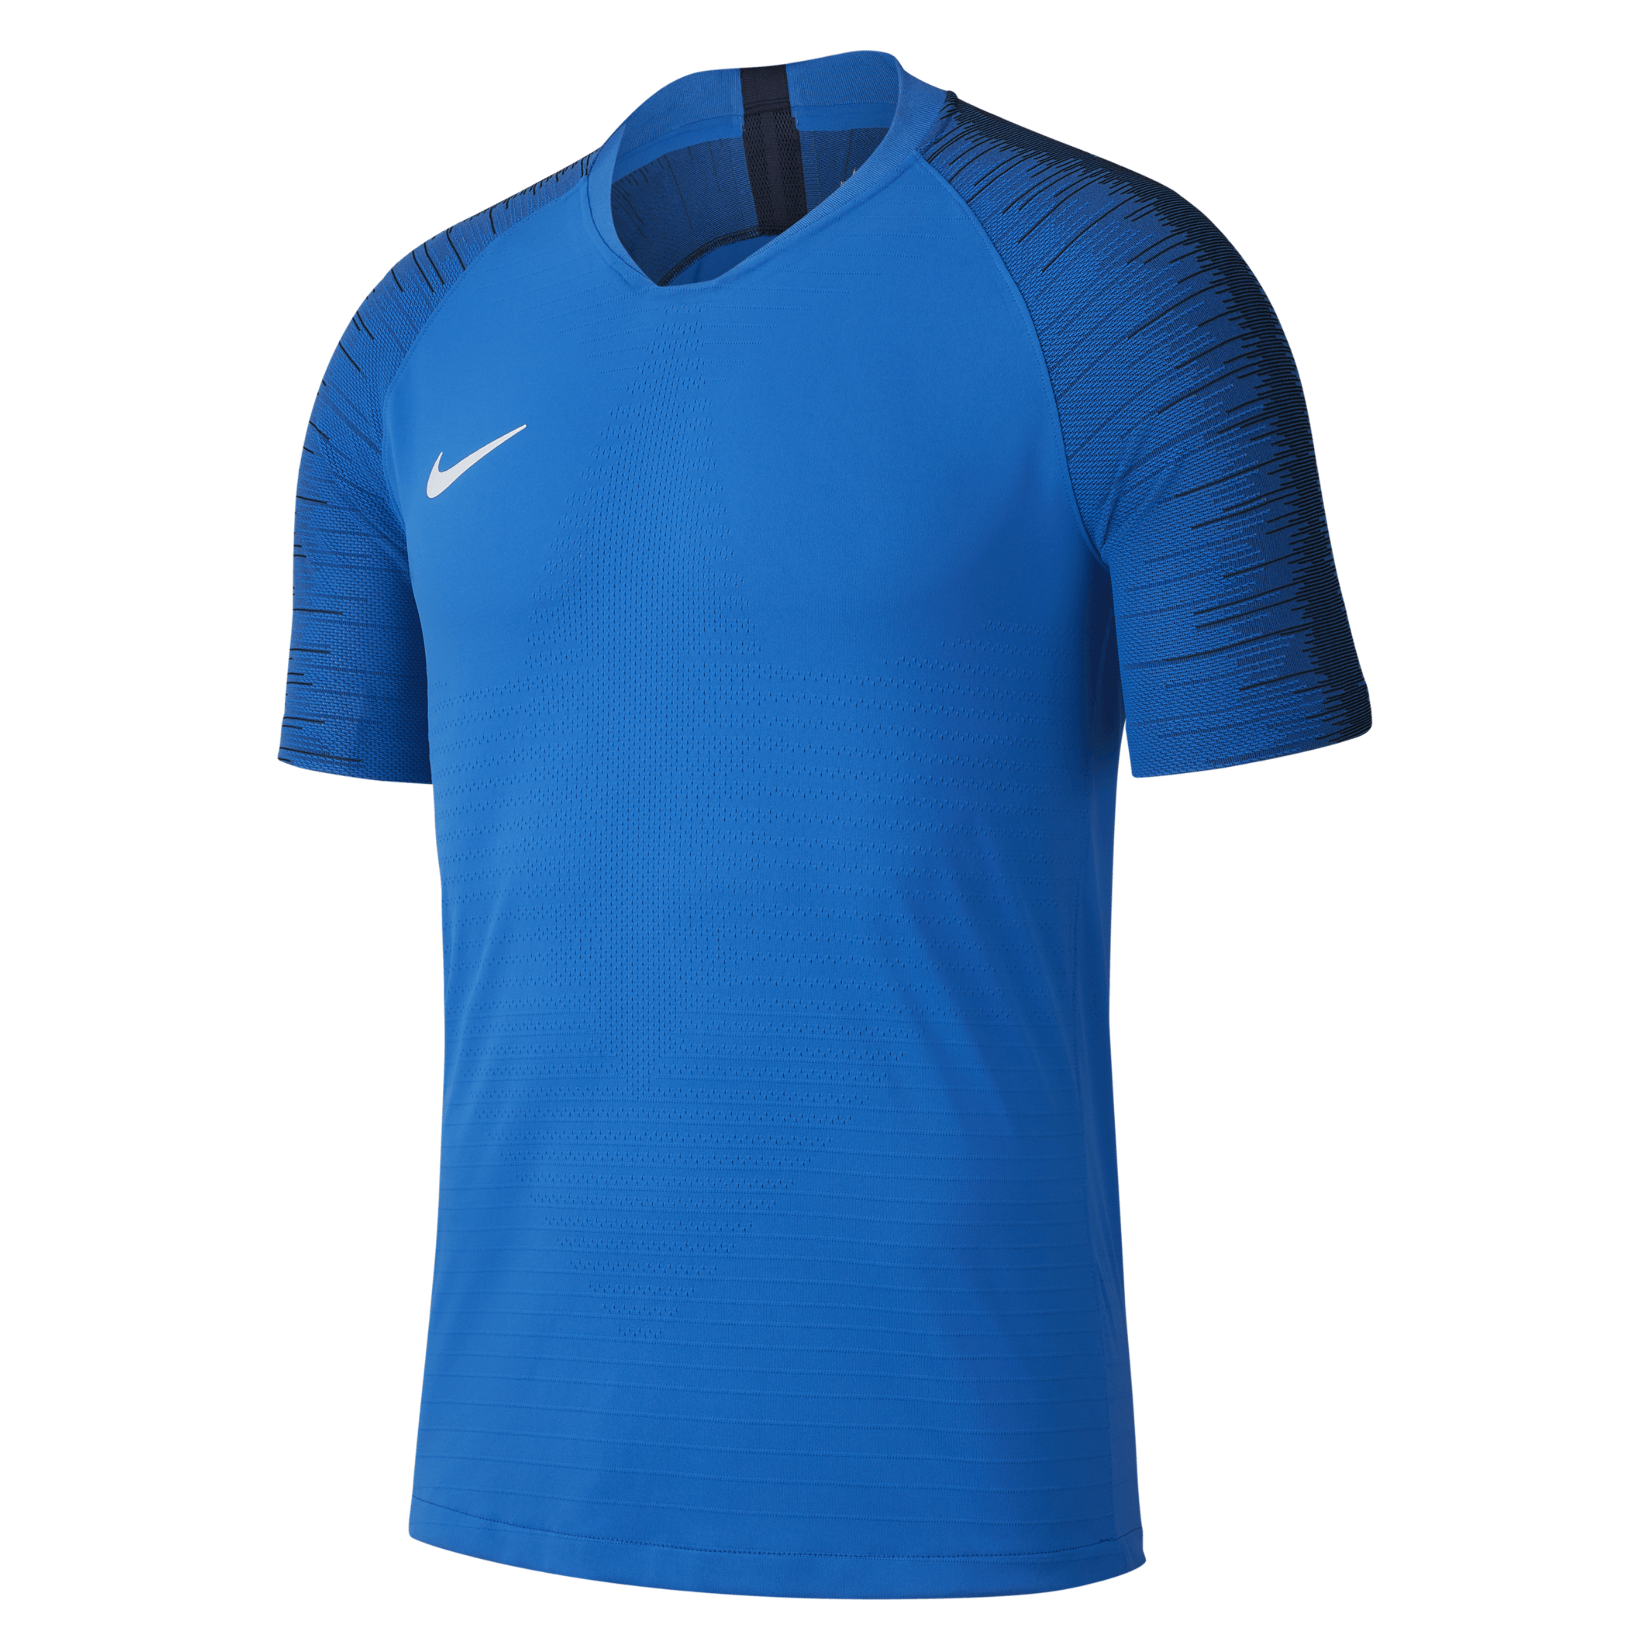 Nike Vapor Knit II Short Sleeve Shirt Royal Blue-Obsidian-White